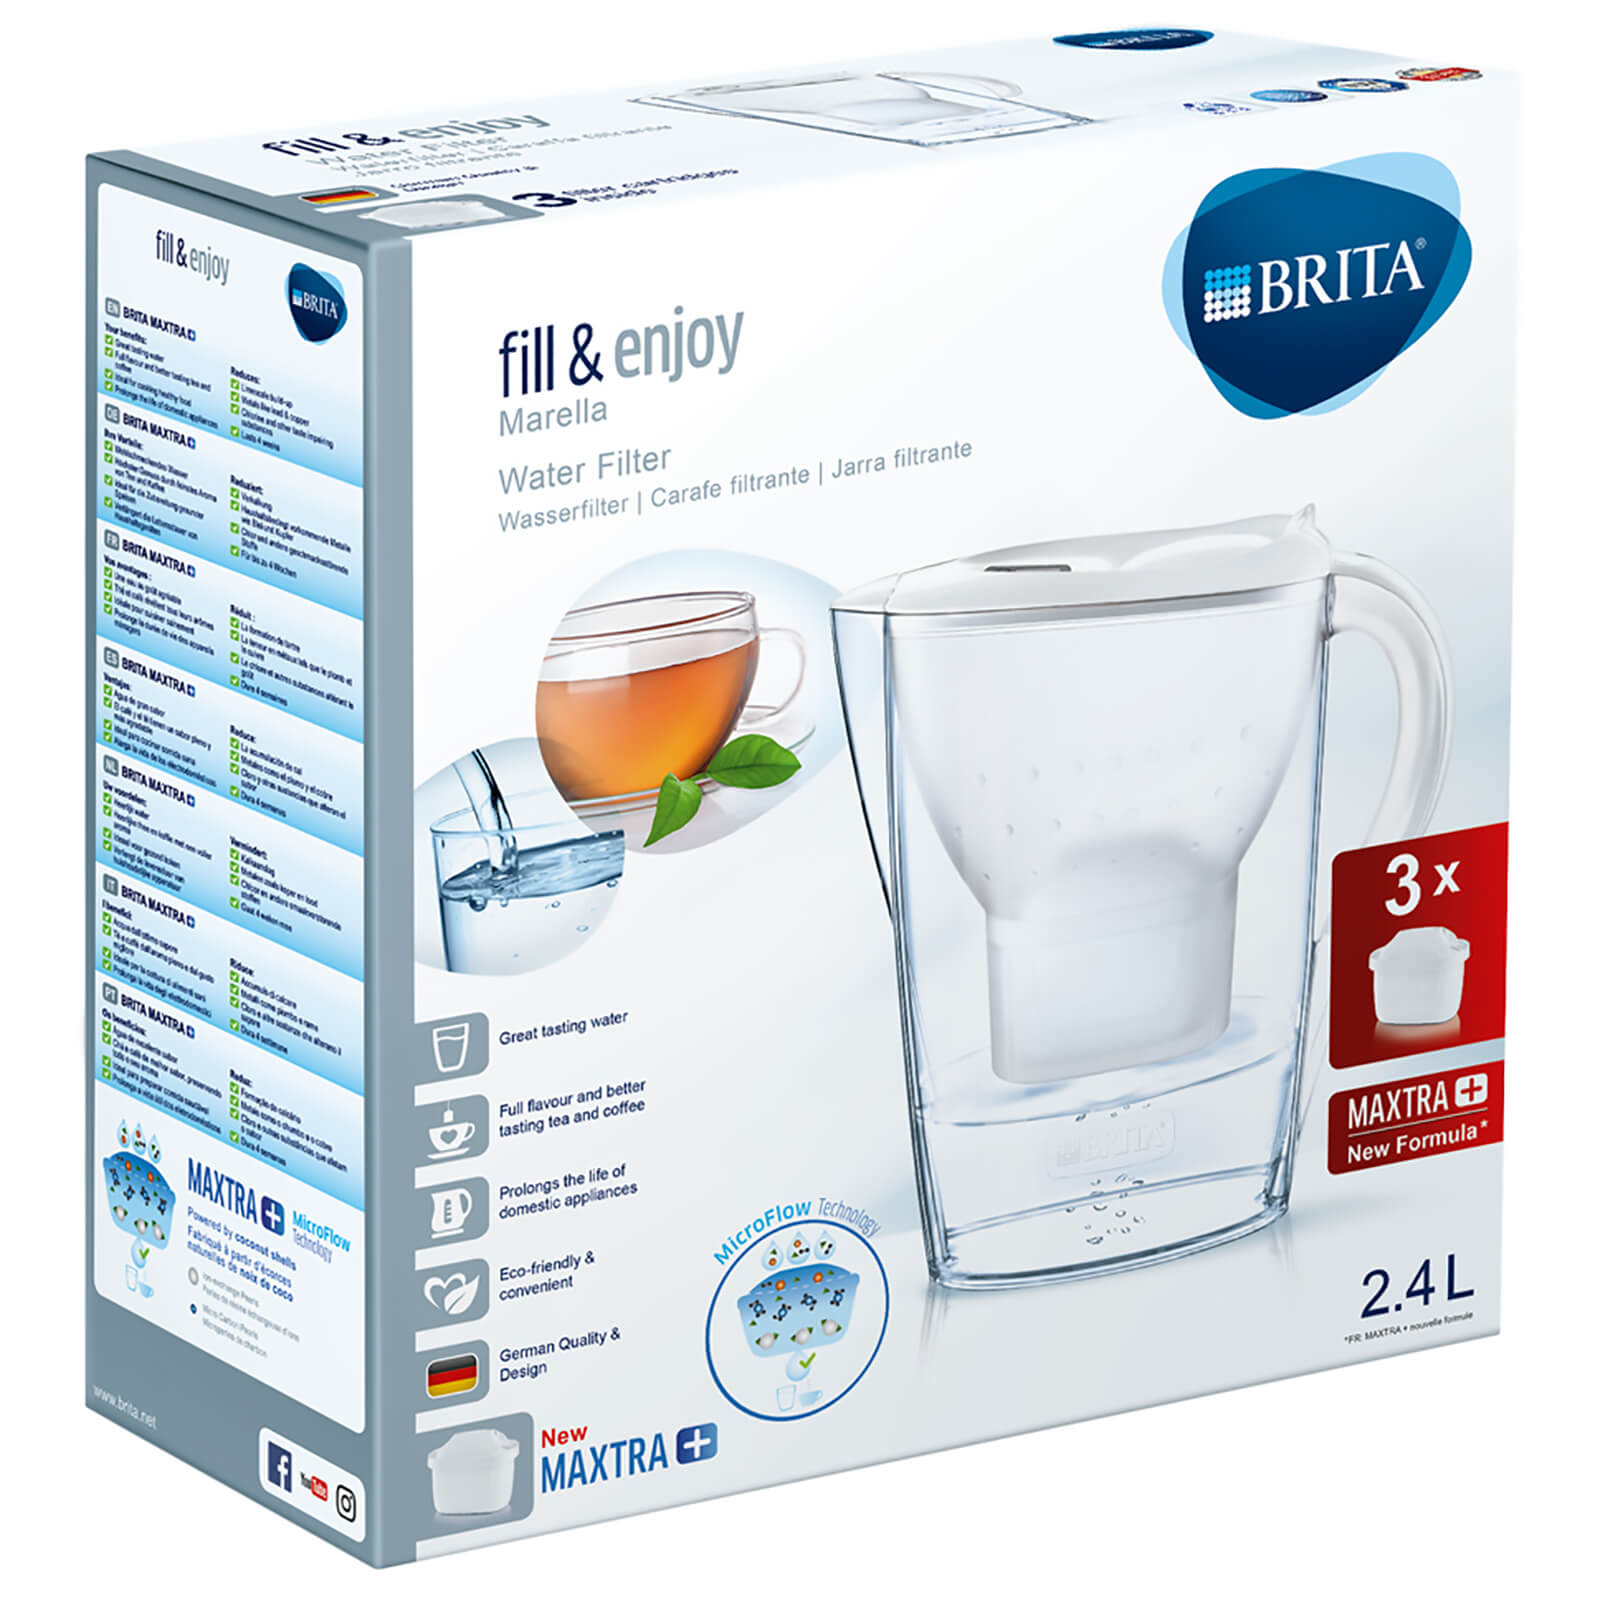 BRITA Maxtra+ Marella Cool Water Filter Jug Starter Pack with 3 Cartridges - White